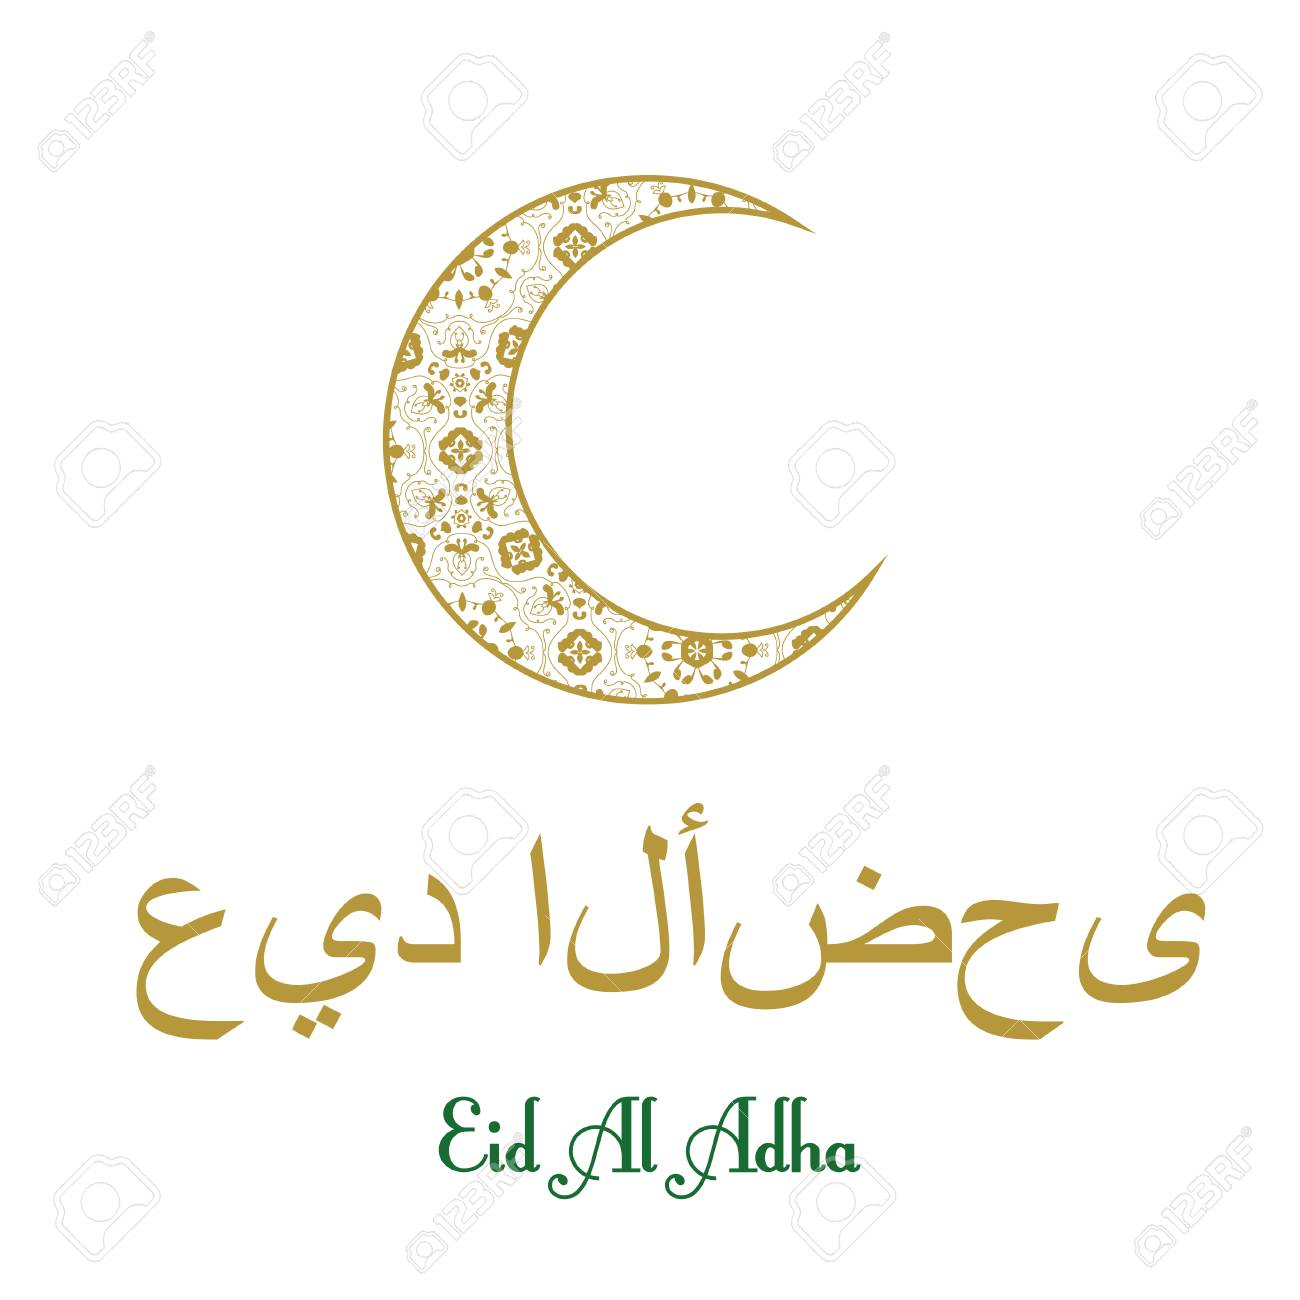 Eid greetings for arabic holiday an islamic greeting card for eid greetings for arabic holiday an islamic greeting card for eid al adha stock vector m4hsunfo